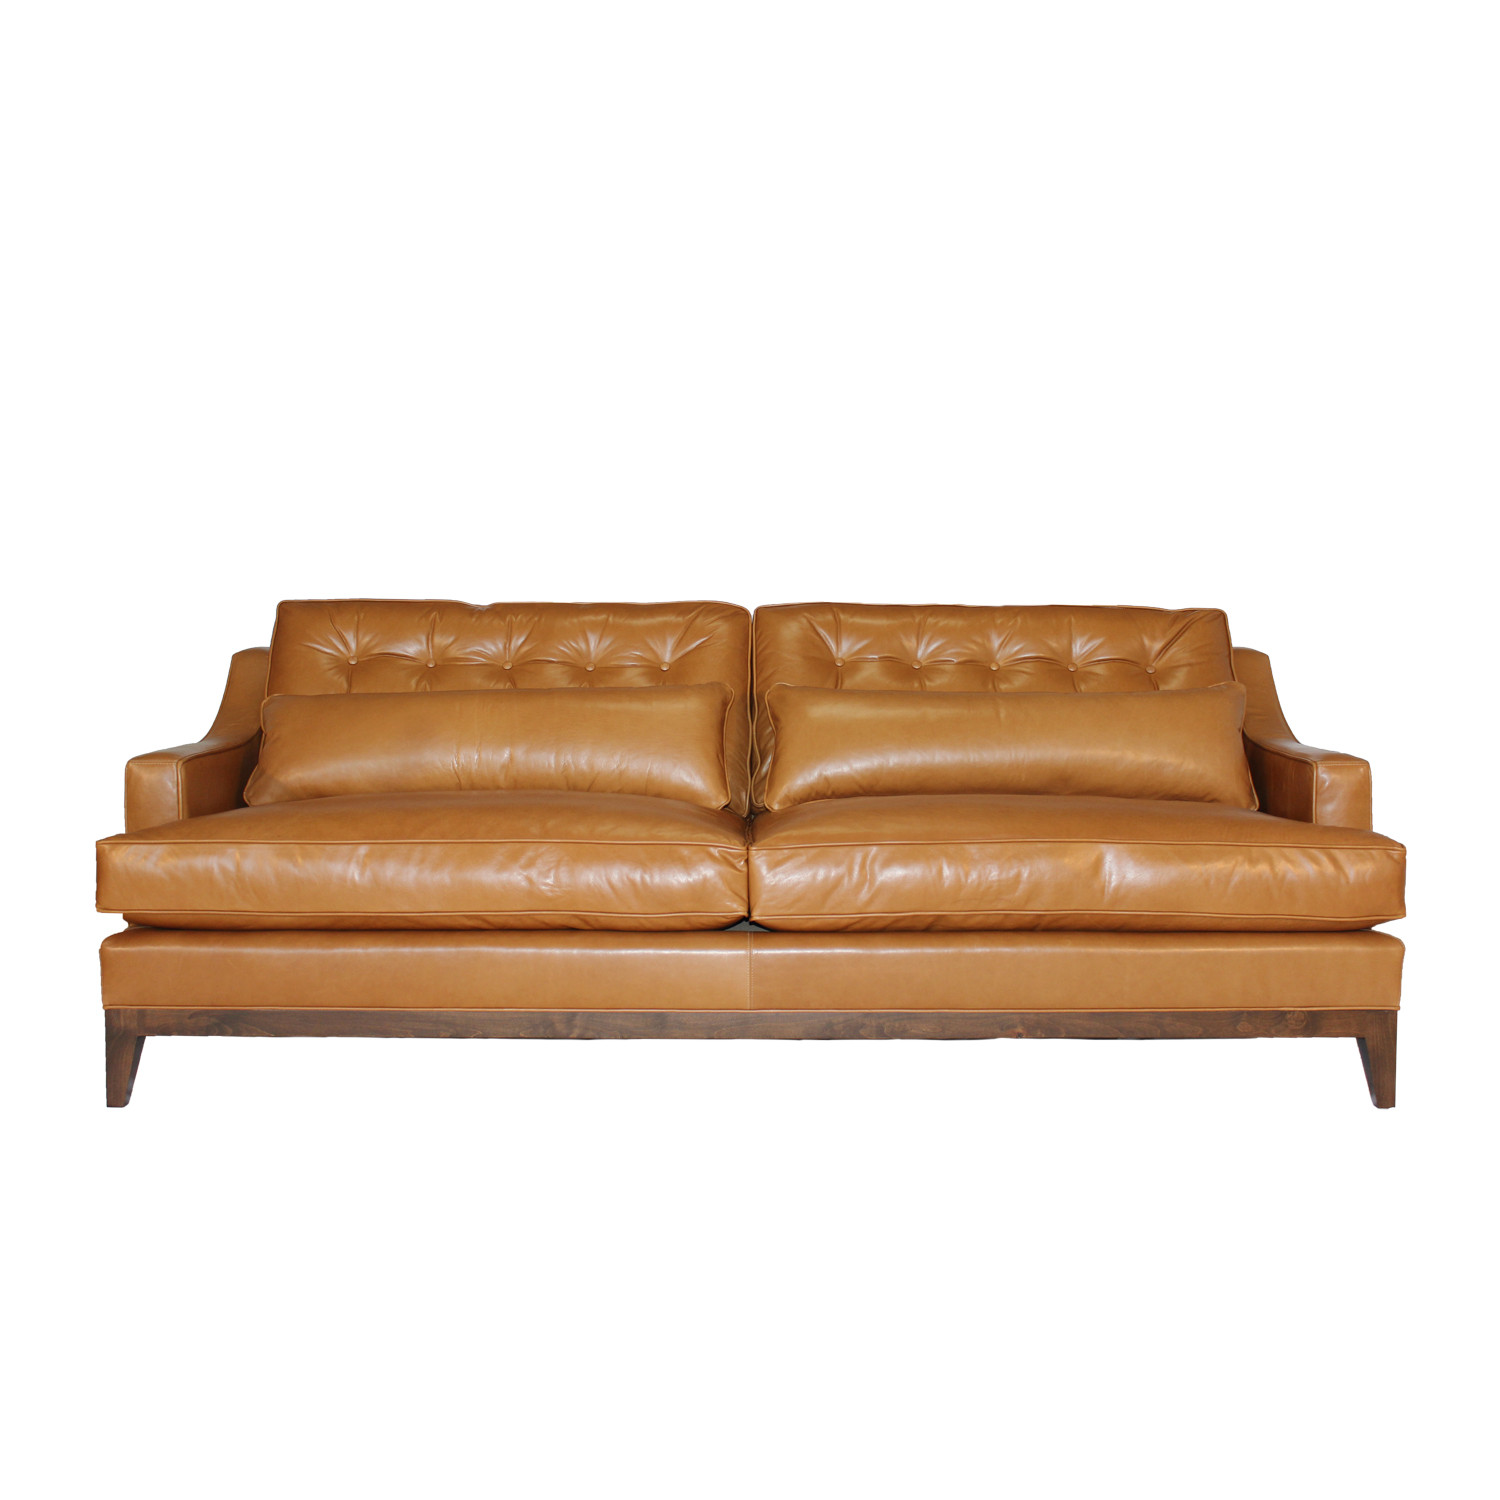 Alva leather sofa jaxon home touch of modern for L furniture warehouse victoria bc